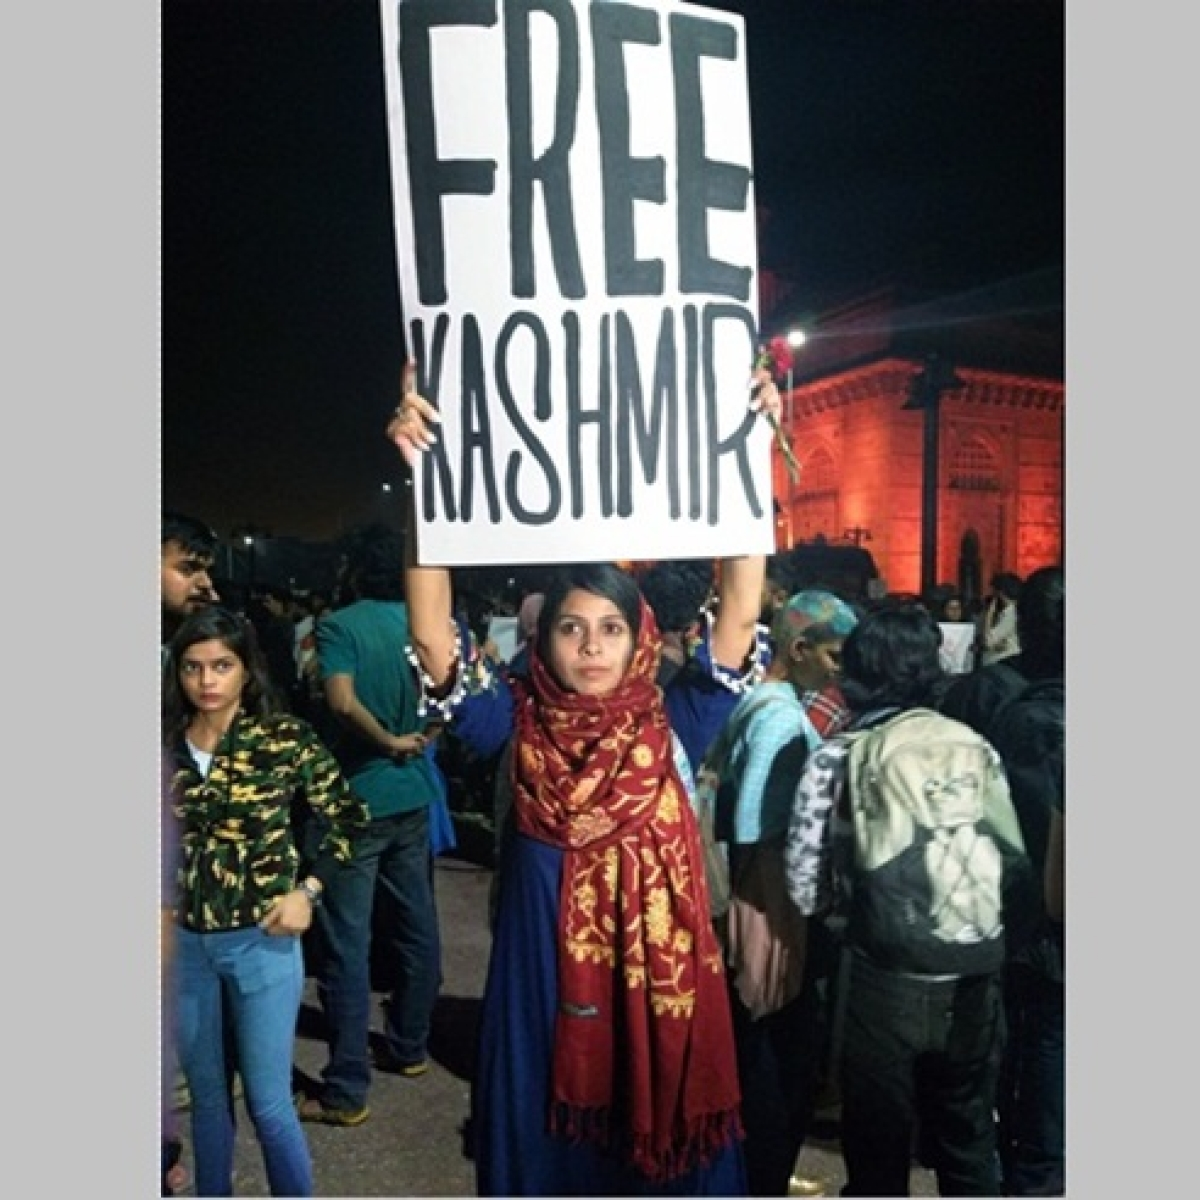 'Free Kashmir' poster queers pitch at Mumbai protest against JNU violence